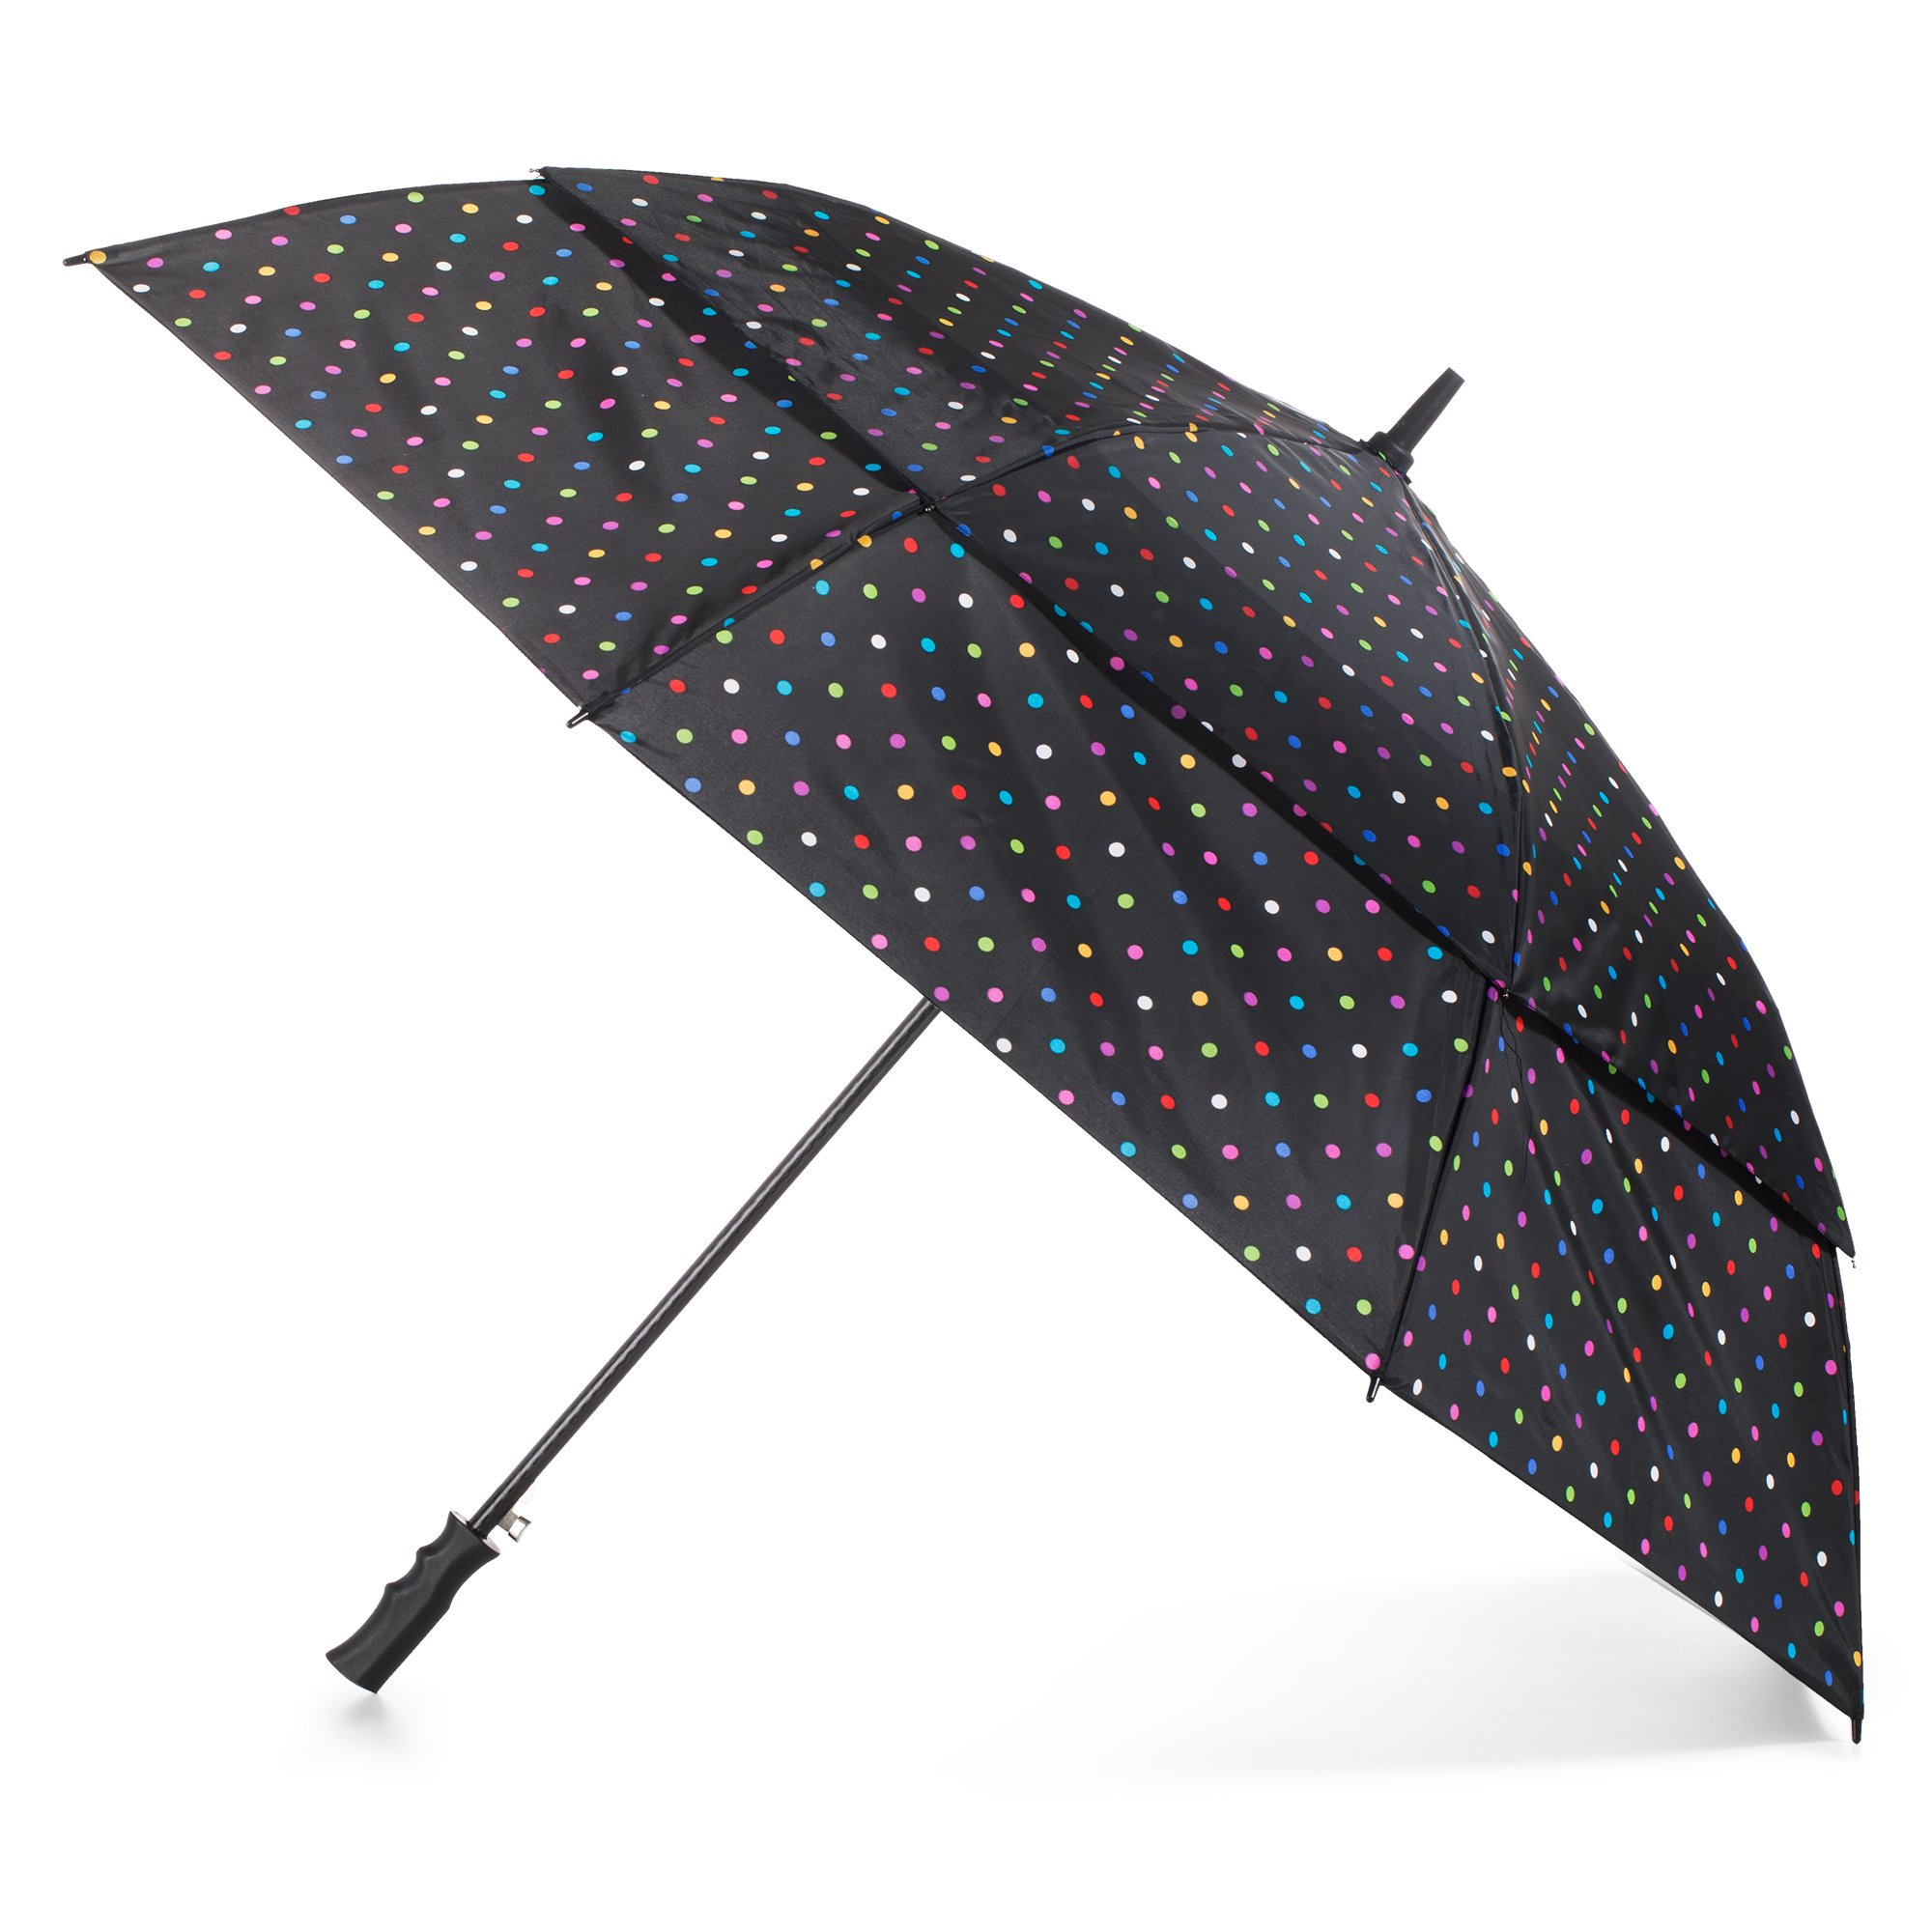 Totes Automatic Open Windproof & Water-Resistant Golf Umbrella, Bright Dots by totes